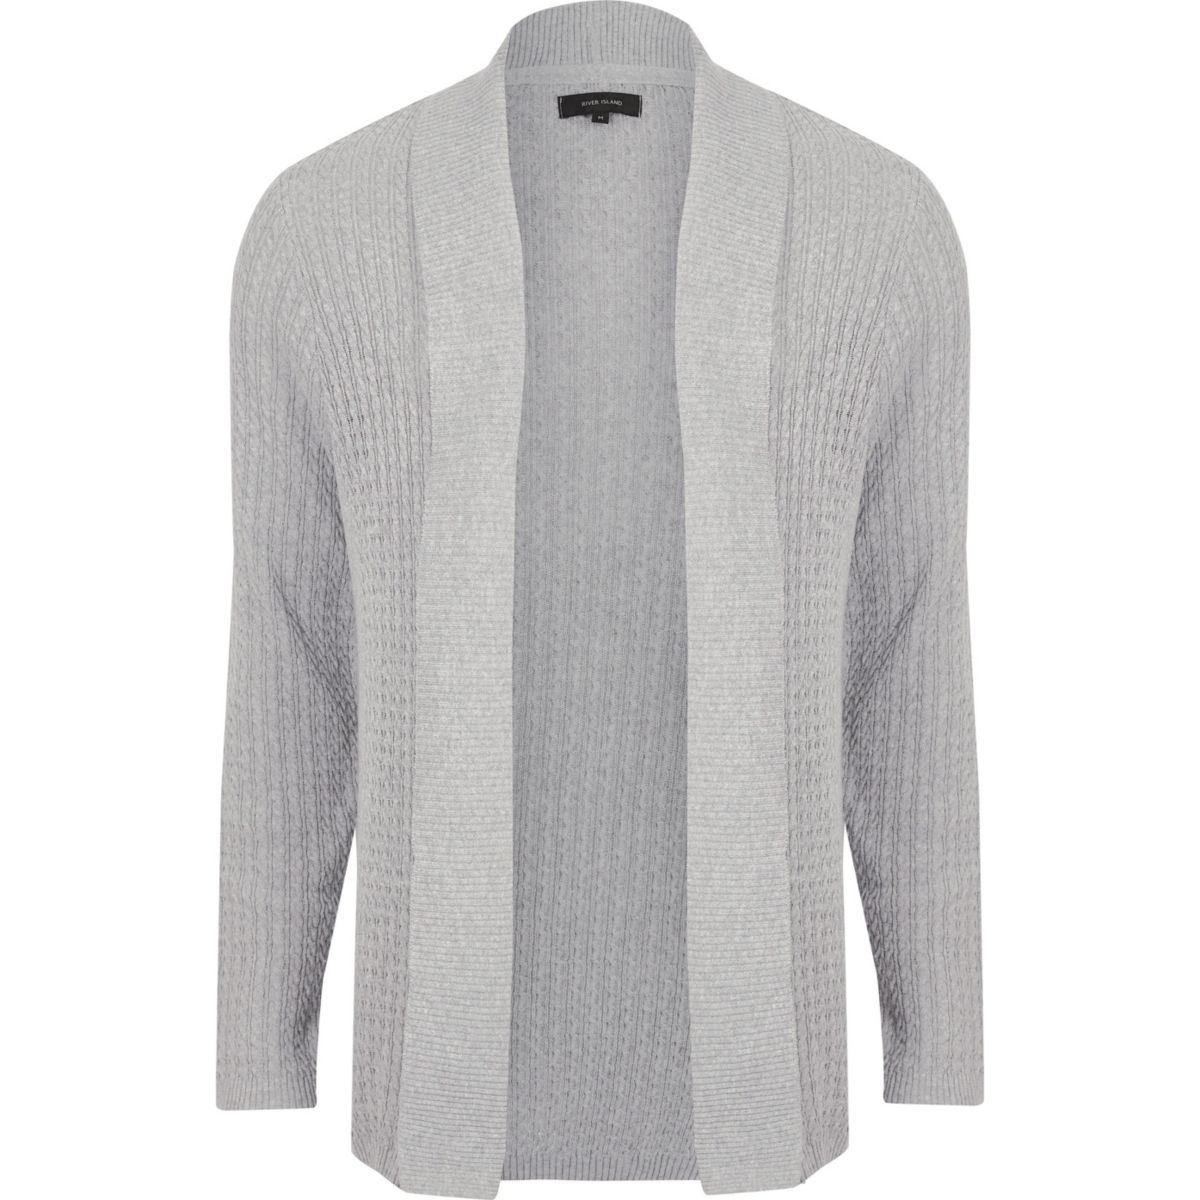 Grey cable knit open front cardigan - Sweaters & Cardigans - Sale ...